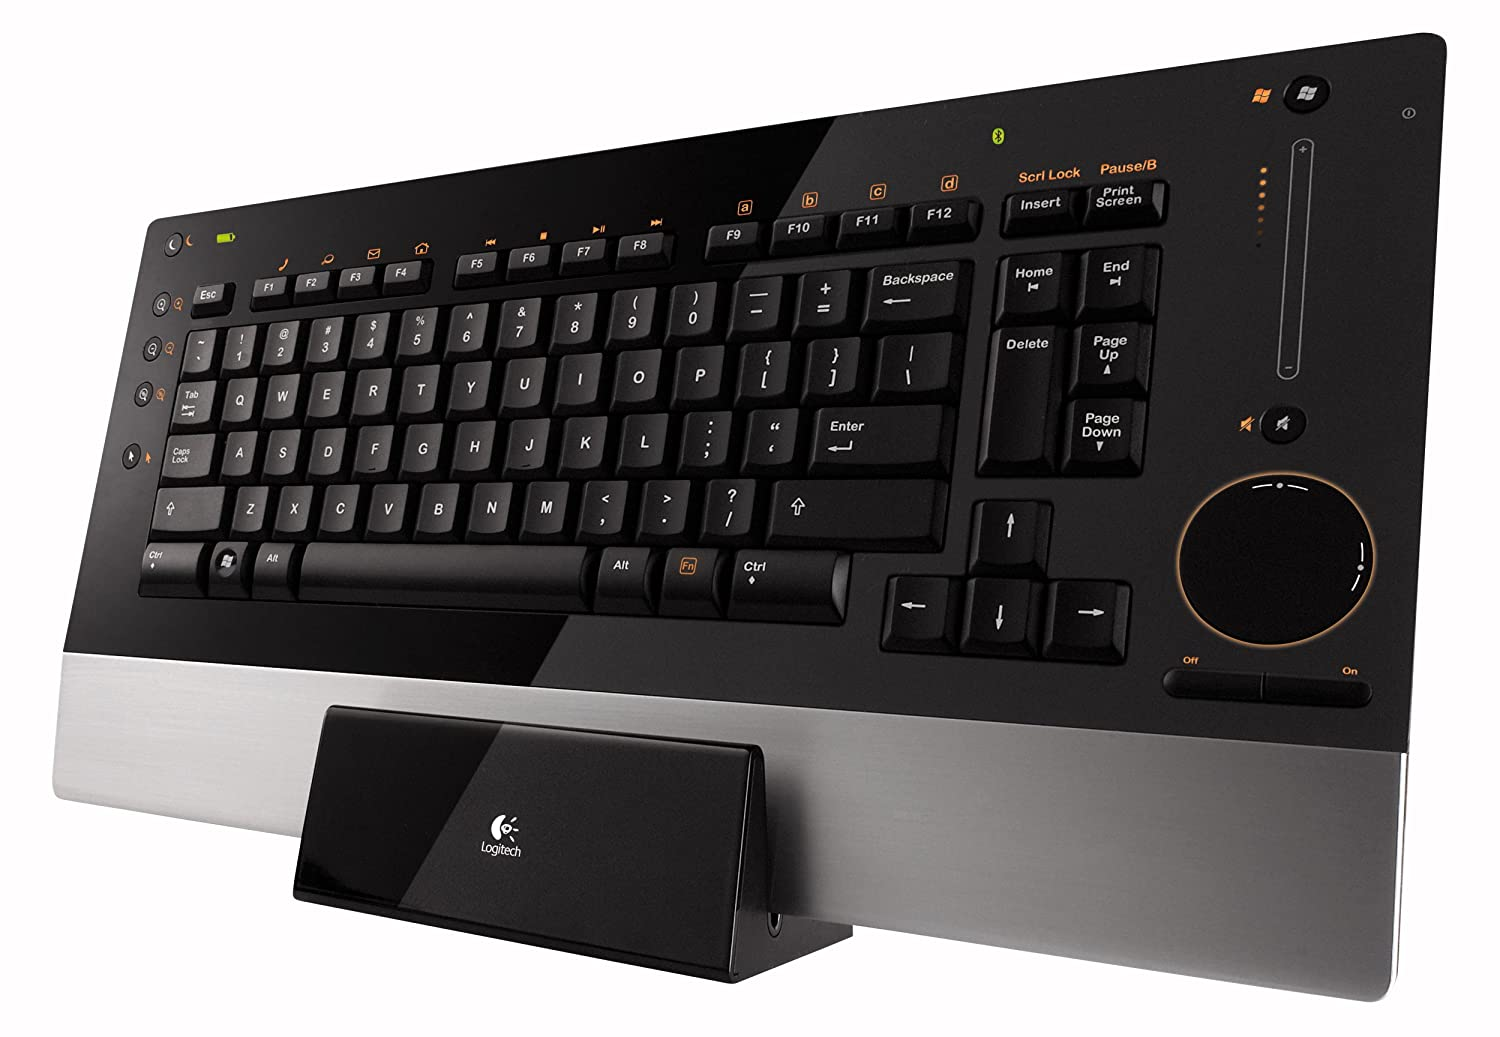 LOGITECH KEYBOARD DINOVO WINDOWS 7 64 DRIVER